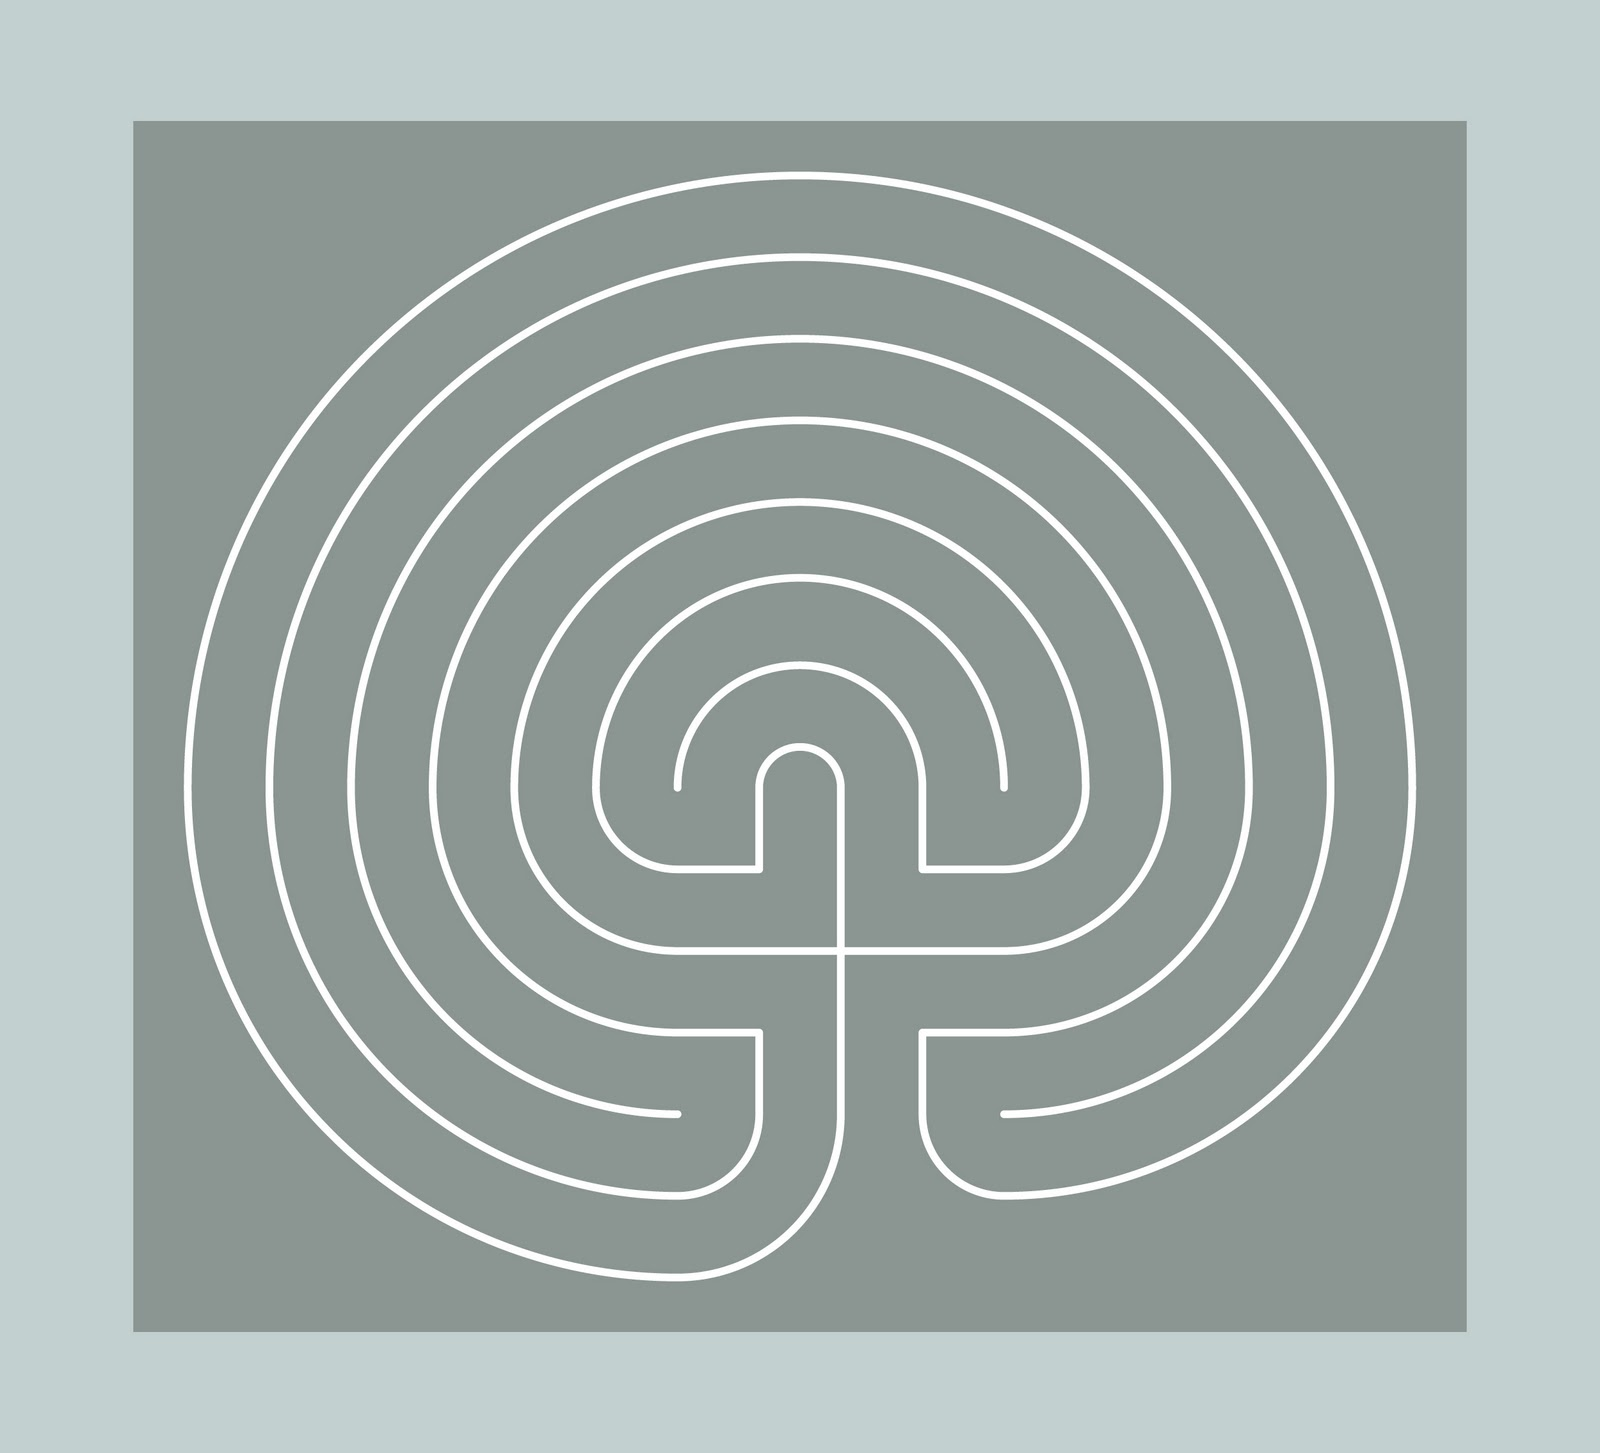 Art, Love and Life: Labyrinth or maze?